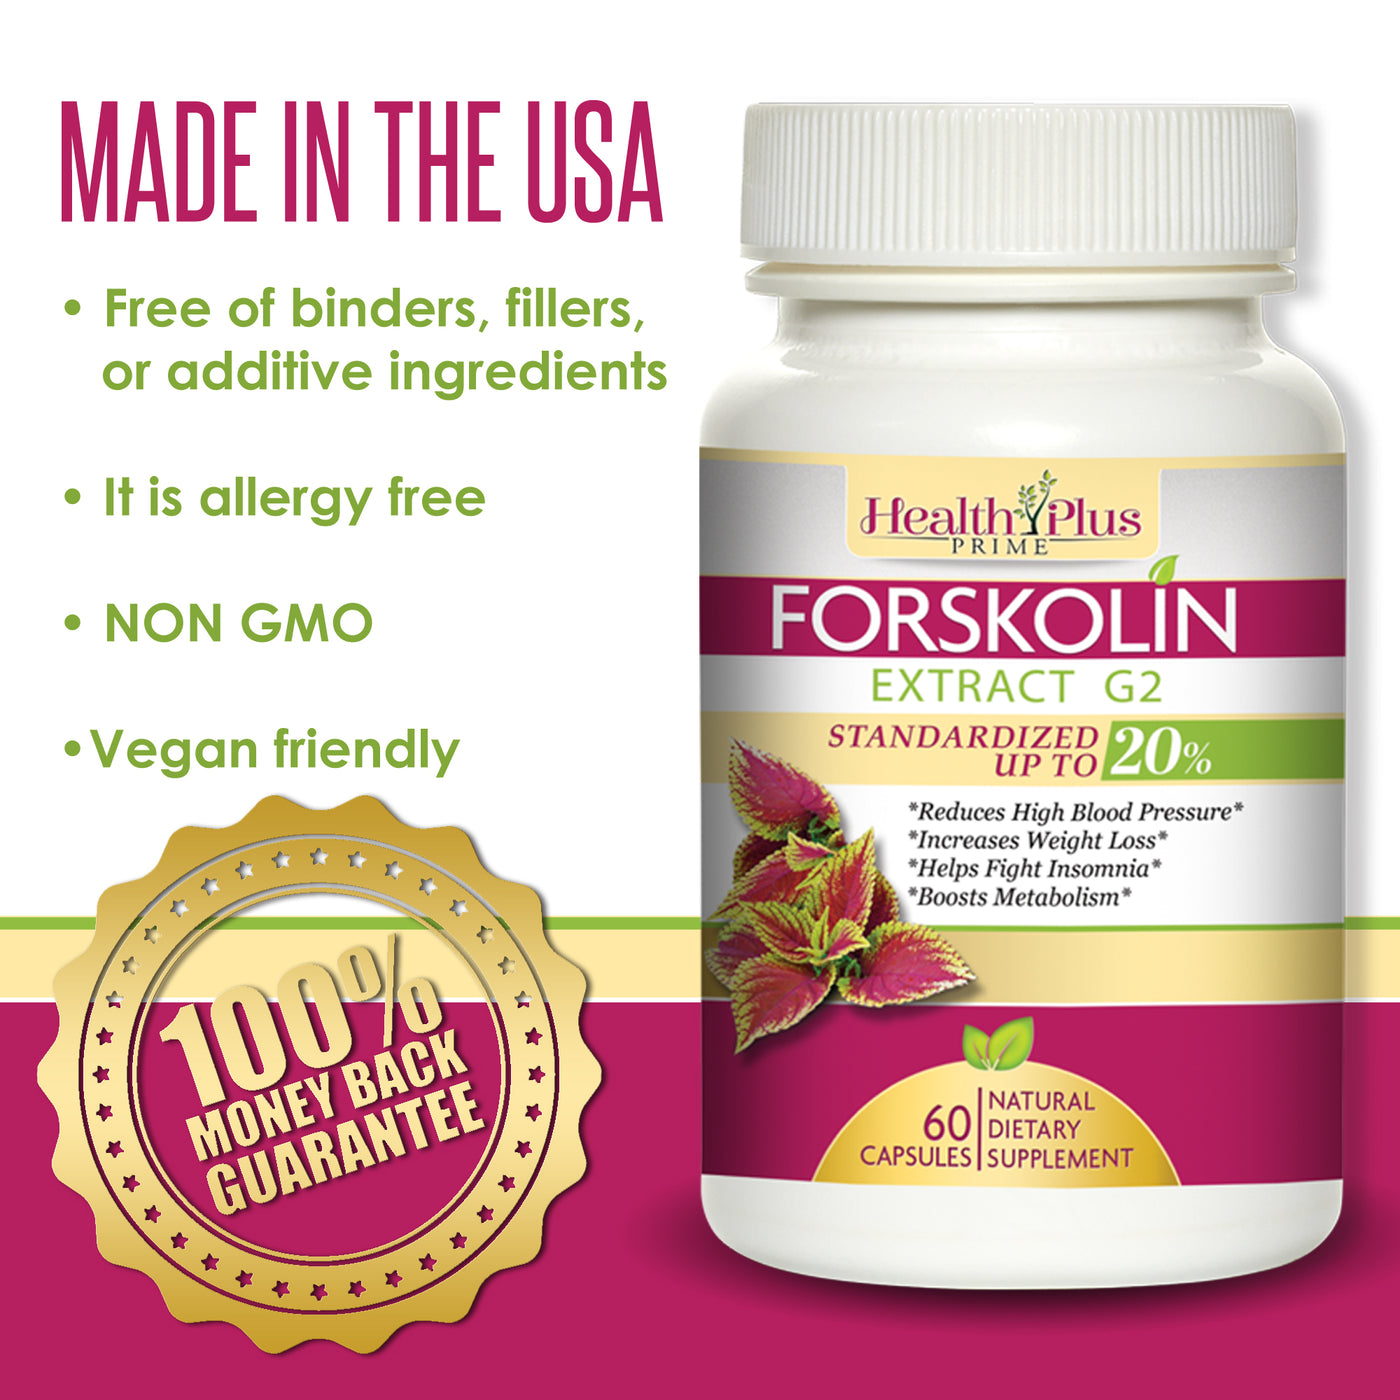 Health Plus Prime Forskolin Extract for Weight Loss Supplement, 60 Pills